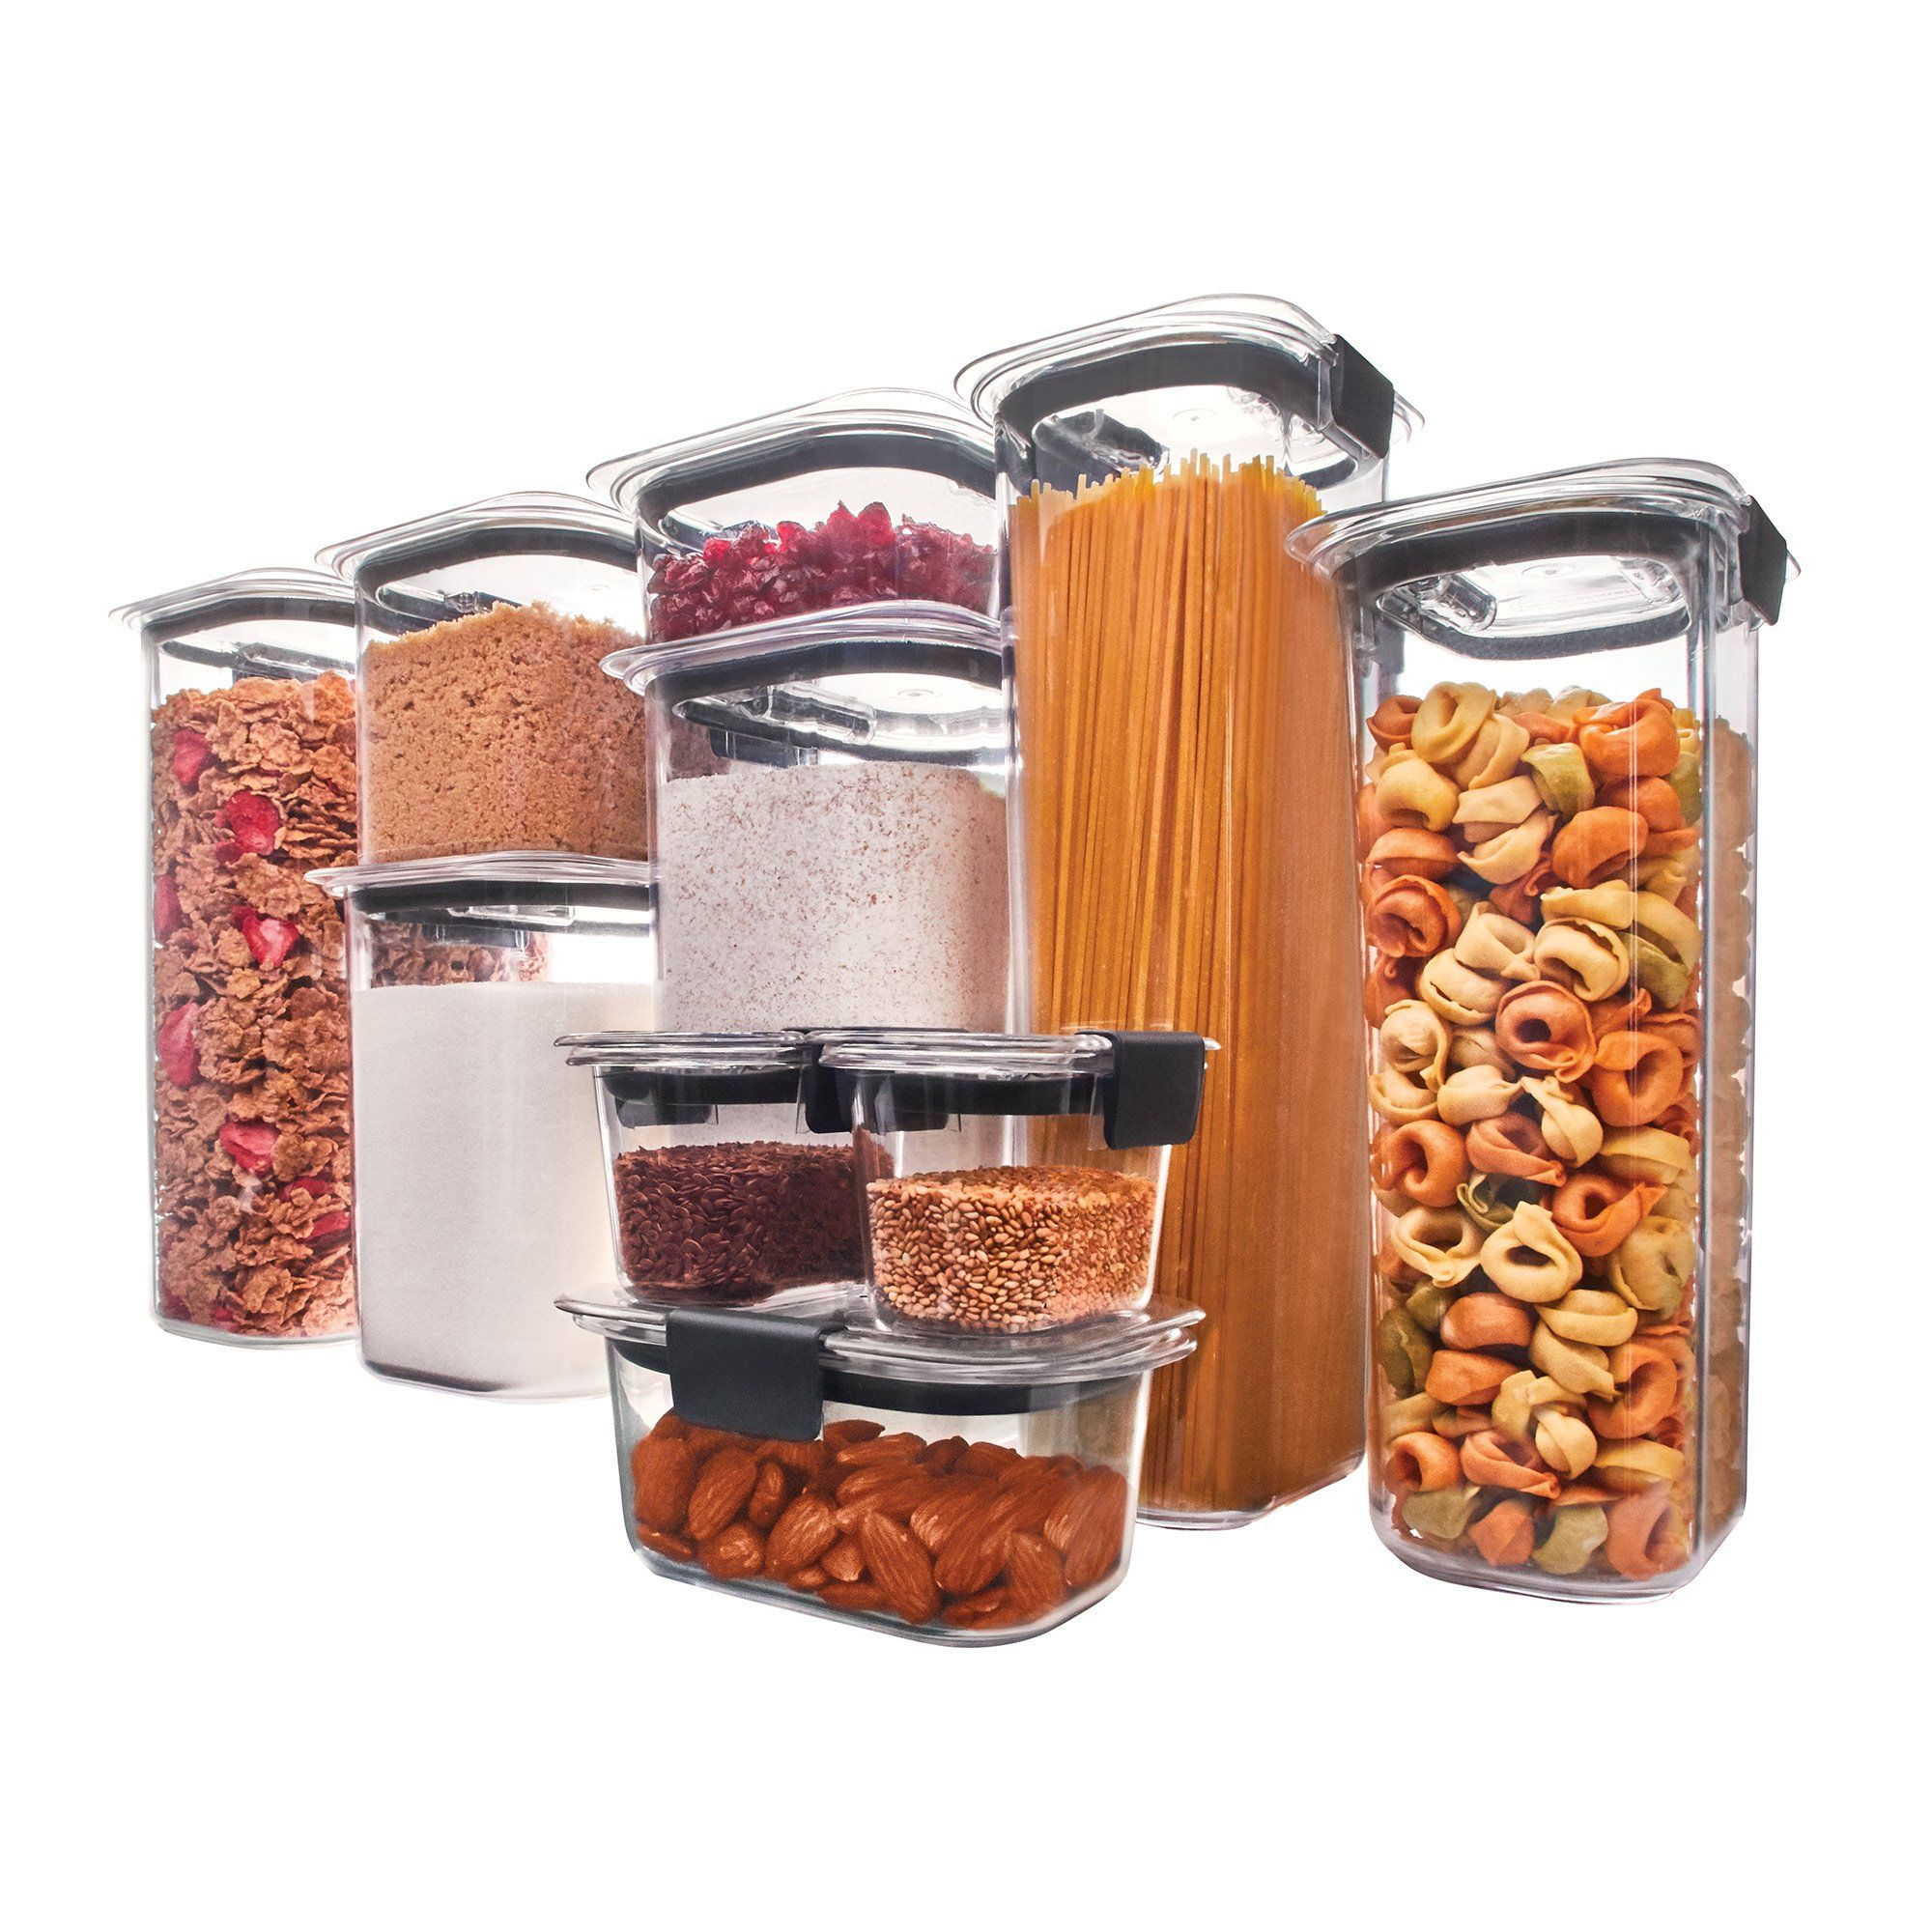 Rubbermaid Brilliance Food Storage Container Set 22 Piece Clear Fascinating Rubbermaid Brilliance Pantry Airtight Food Storage Container Bpa Inspiration